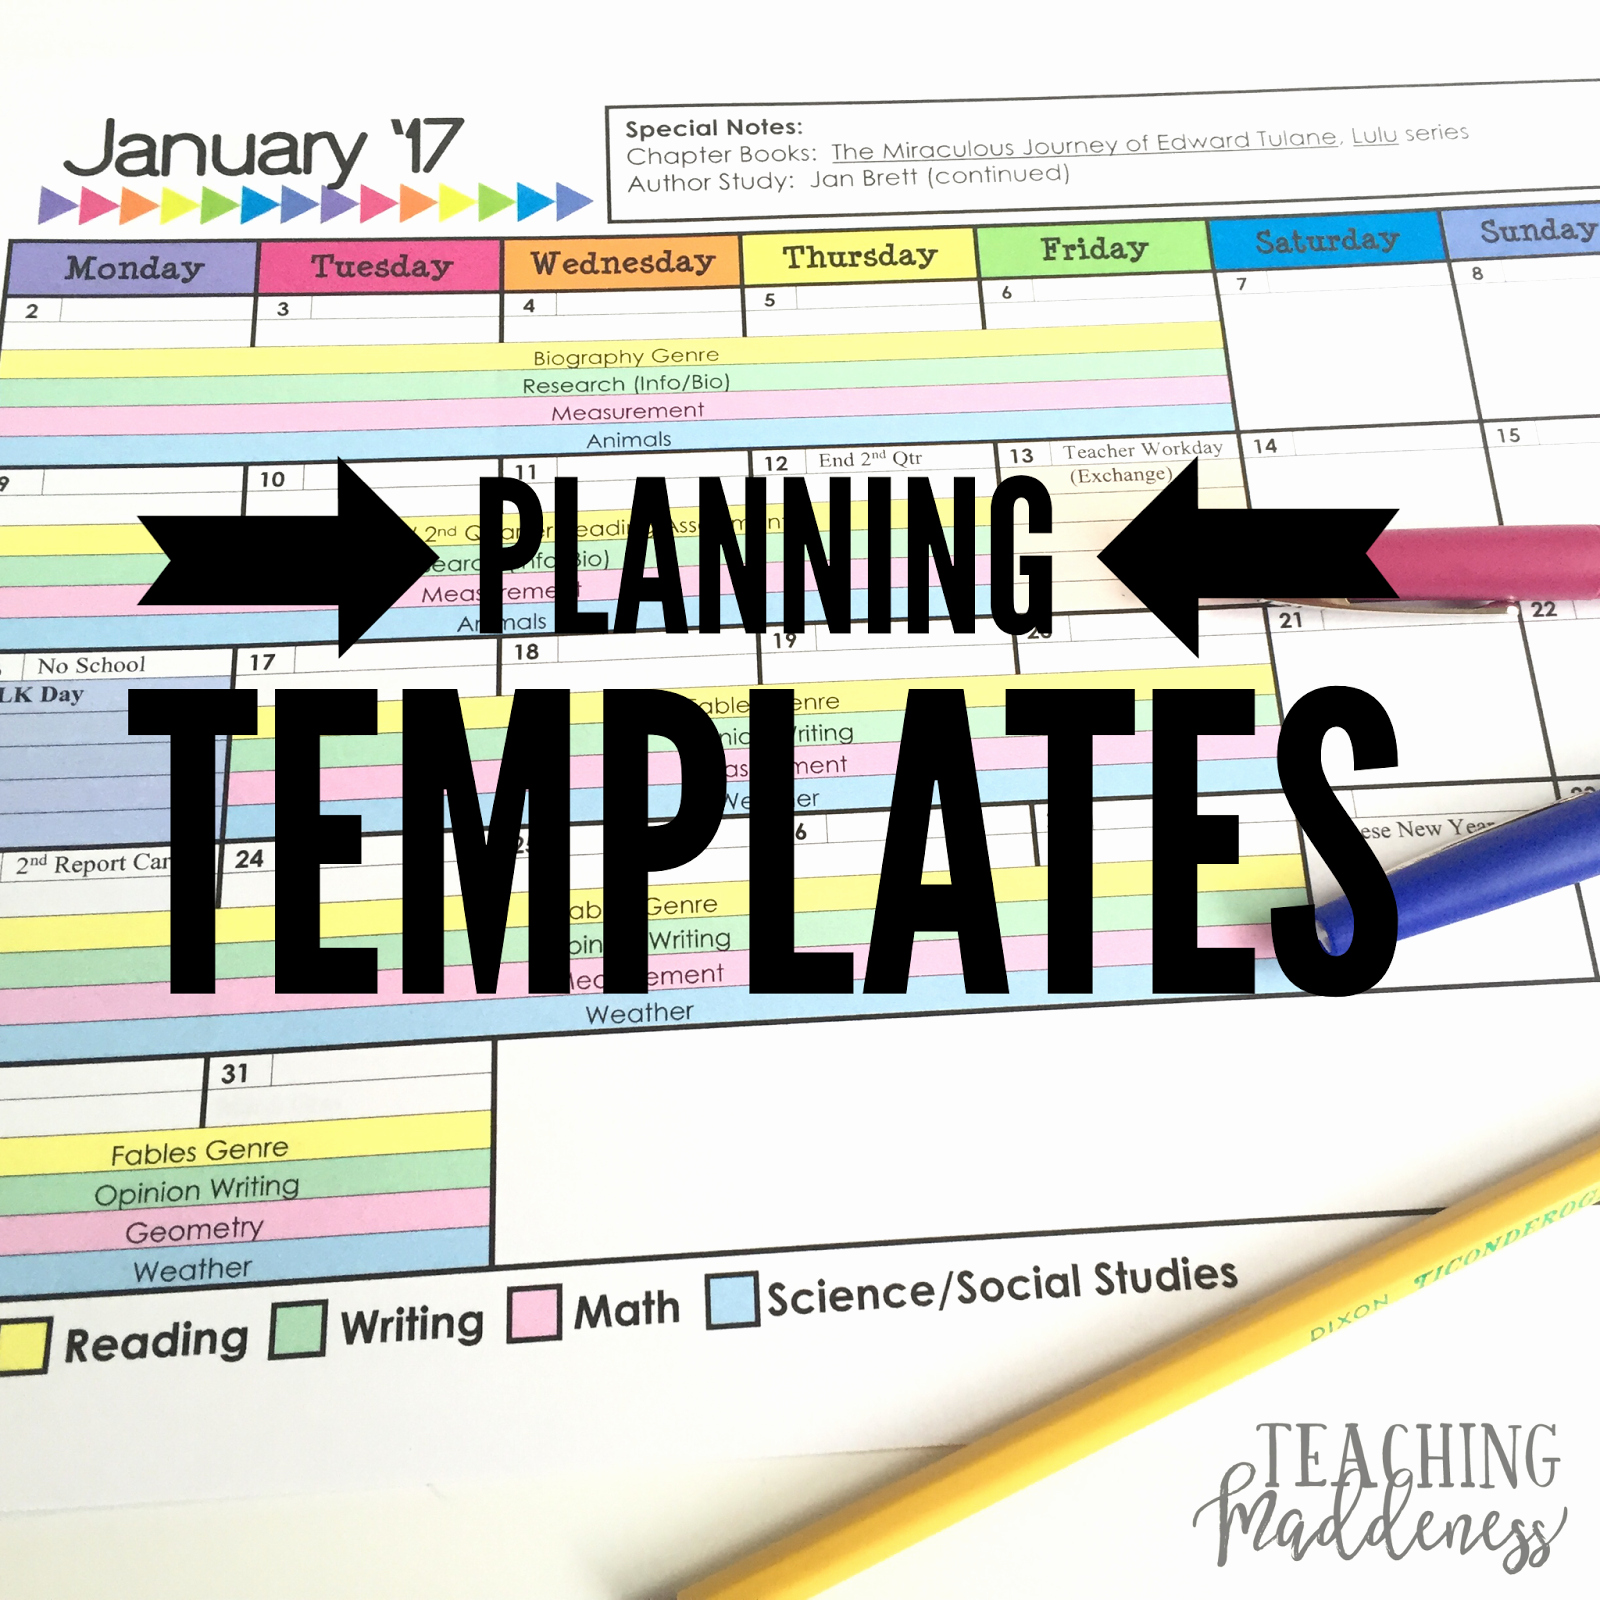 College 4 Year Plan Template Unique 2016 Long Range Plans Template Teaching Maddeness